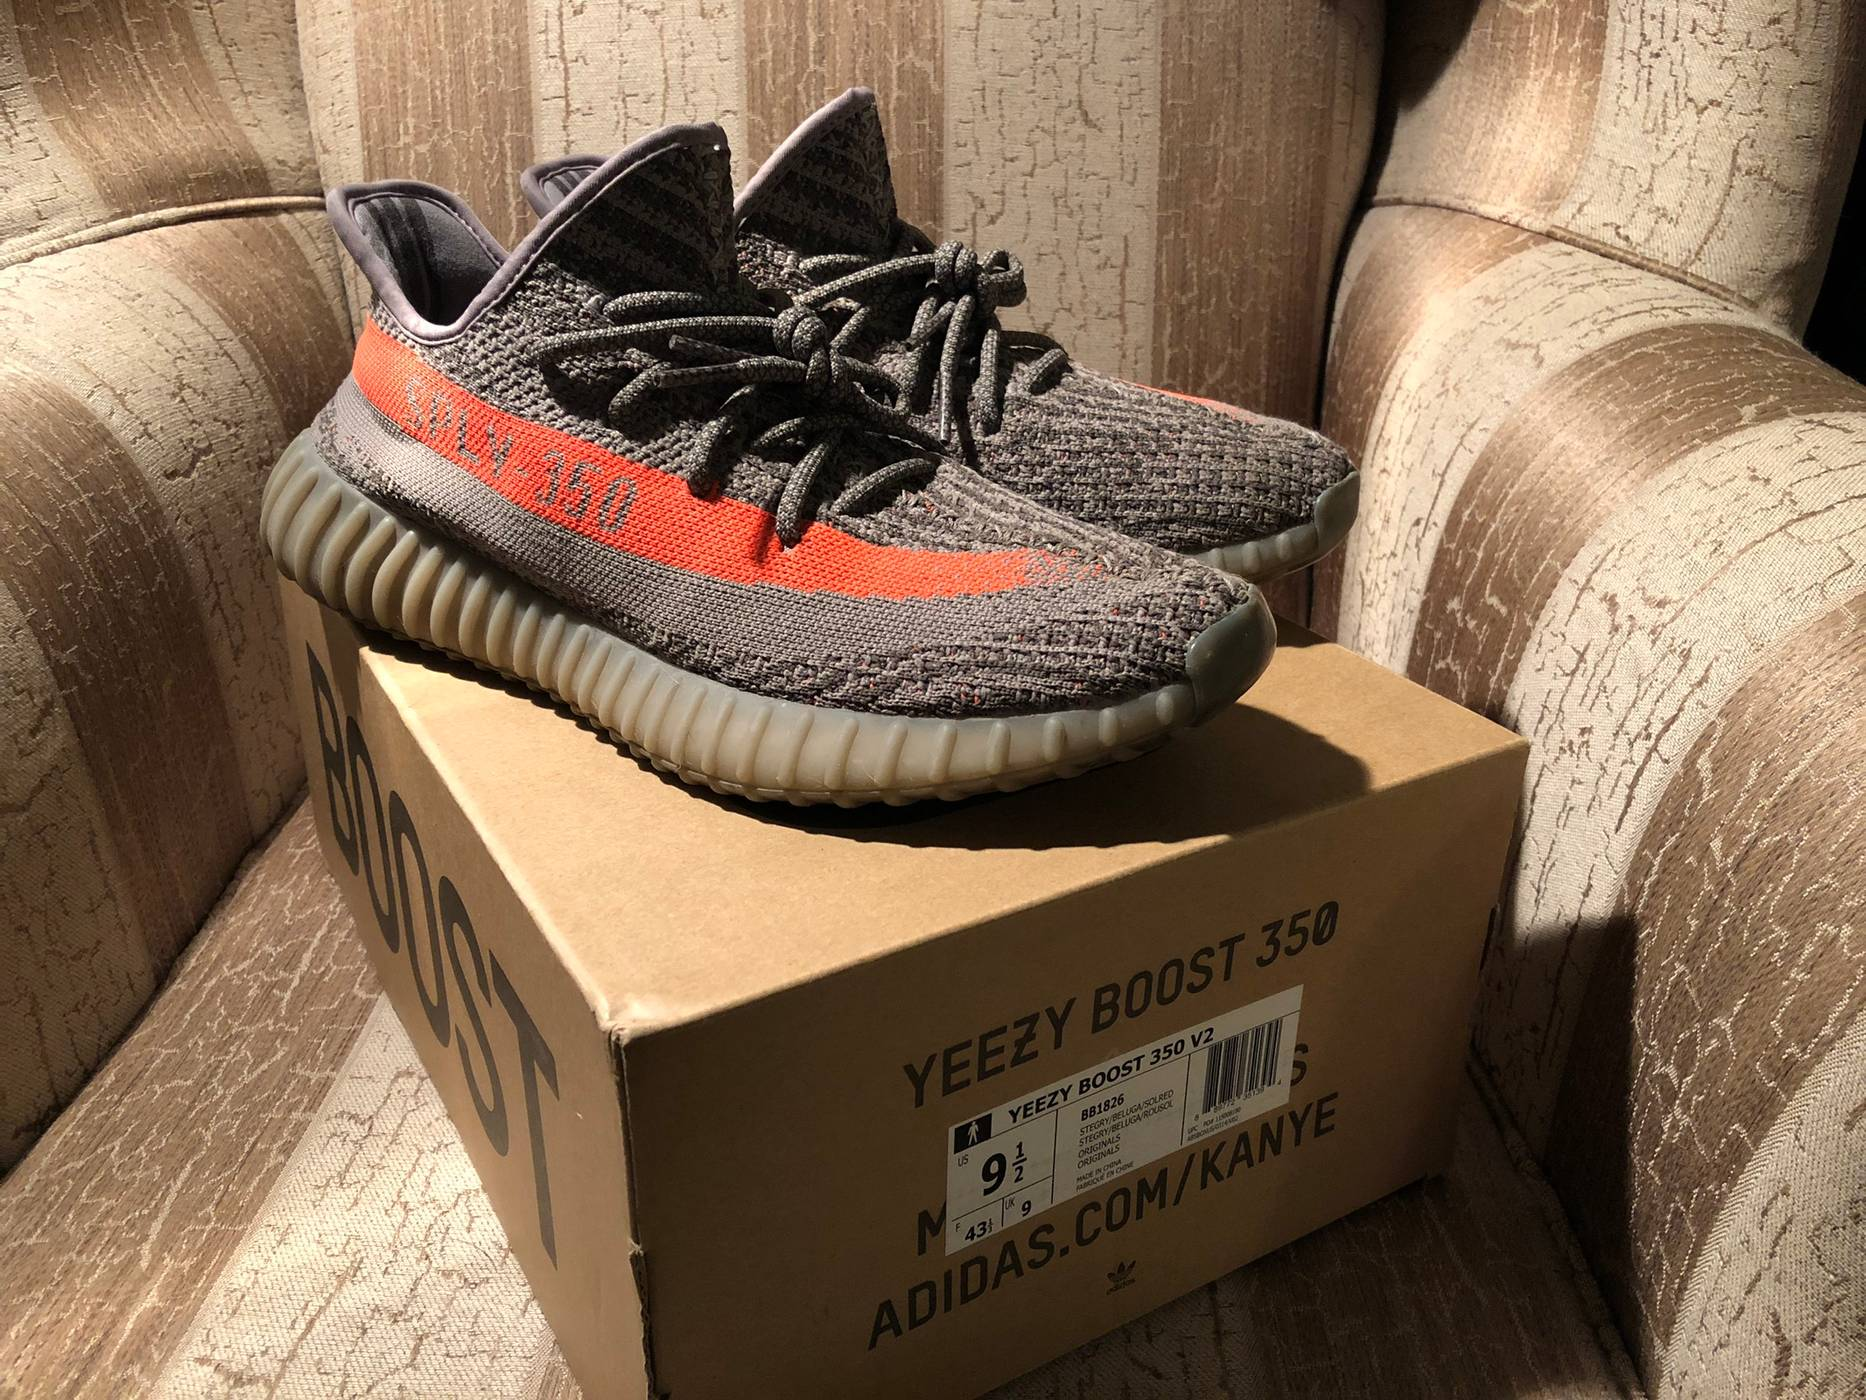 5256edad611e6d Yeezy Boost 350 V2 Beluga 1.0 - Size 9.5 for sale - RedFlagDeals.com ...